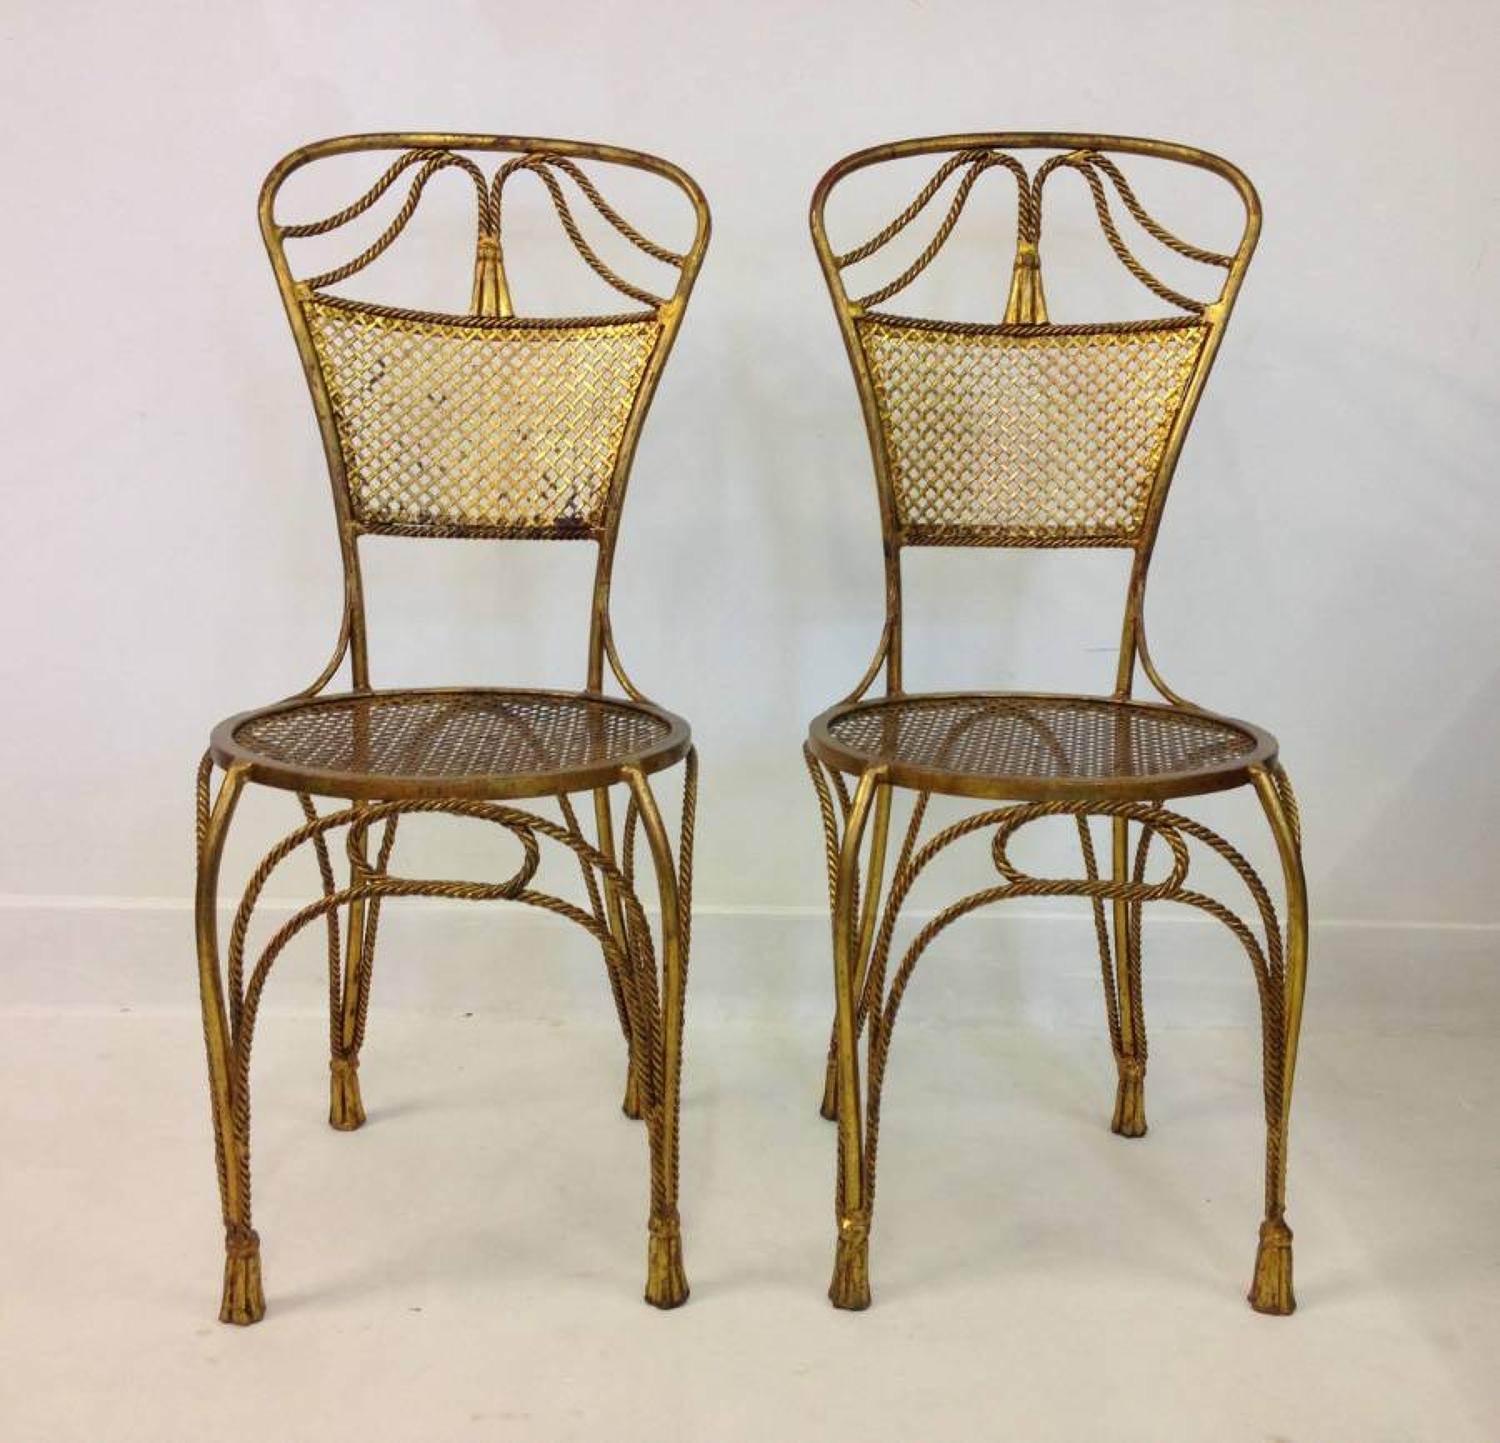 A pair of gilt metal rope or tassel chairs